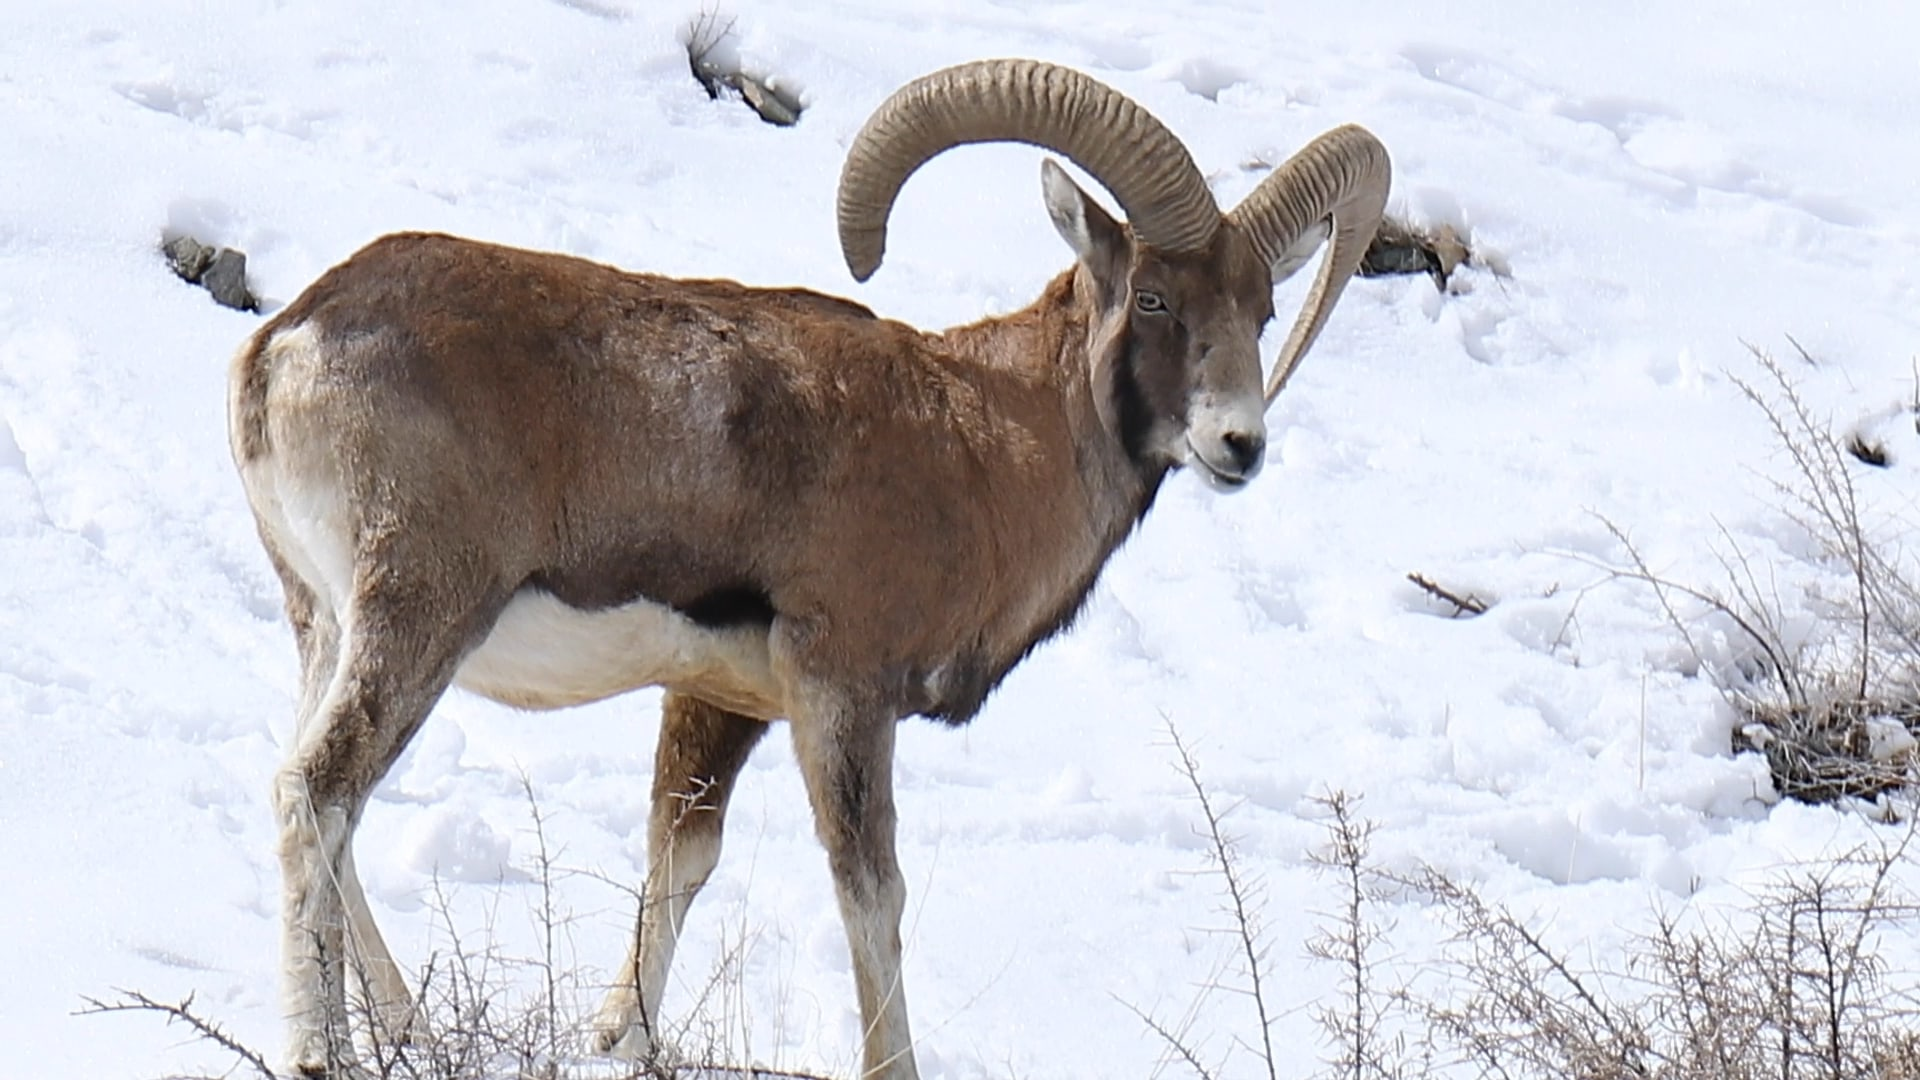 The Ladakh Urial's Life at the Edge